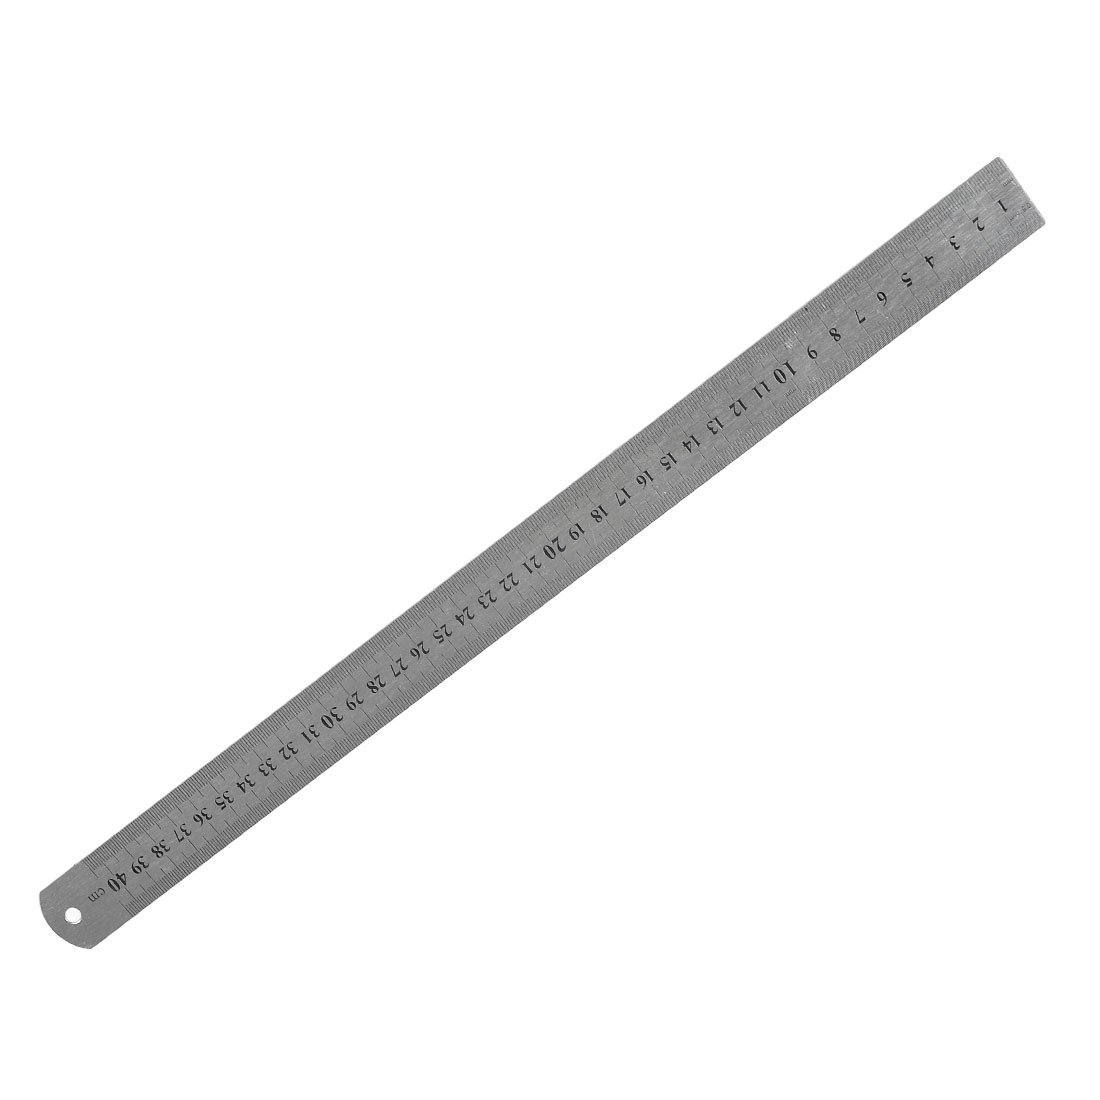 Stainless Steel 16 Inch Straight Ruler Measuring Kit